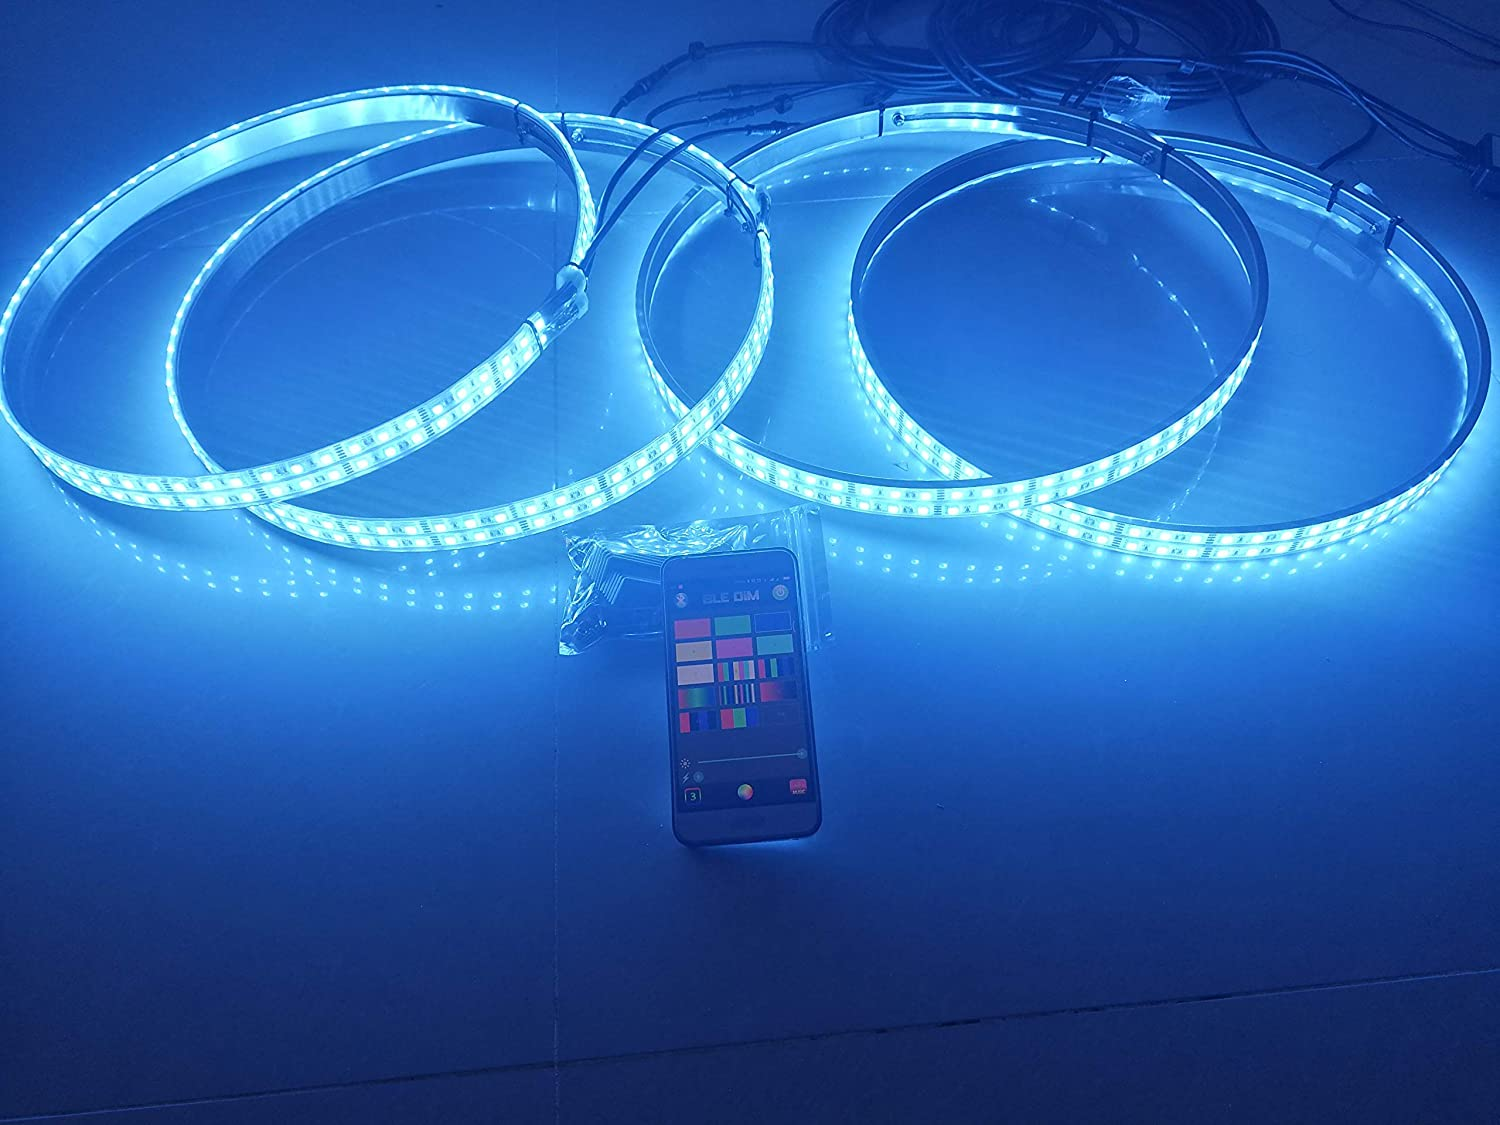 (Set4) RGB Double Row Brightest Led Wheel Ring Lights Car Tire Lights IP68 Waterproof Blue-Tooth APP Control Multi-Colors ledwheellights